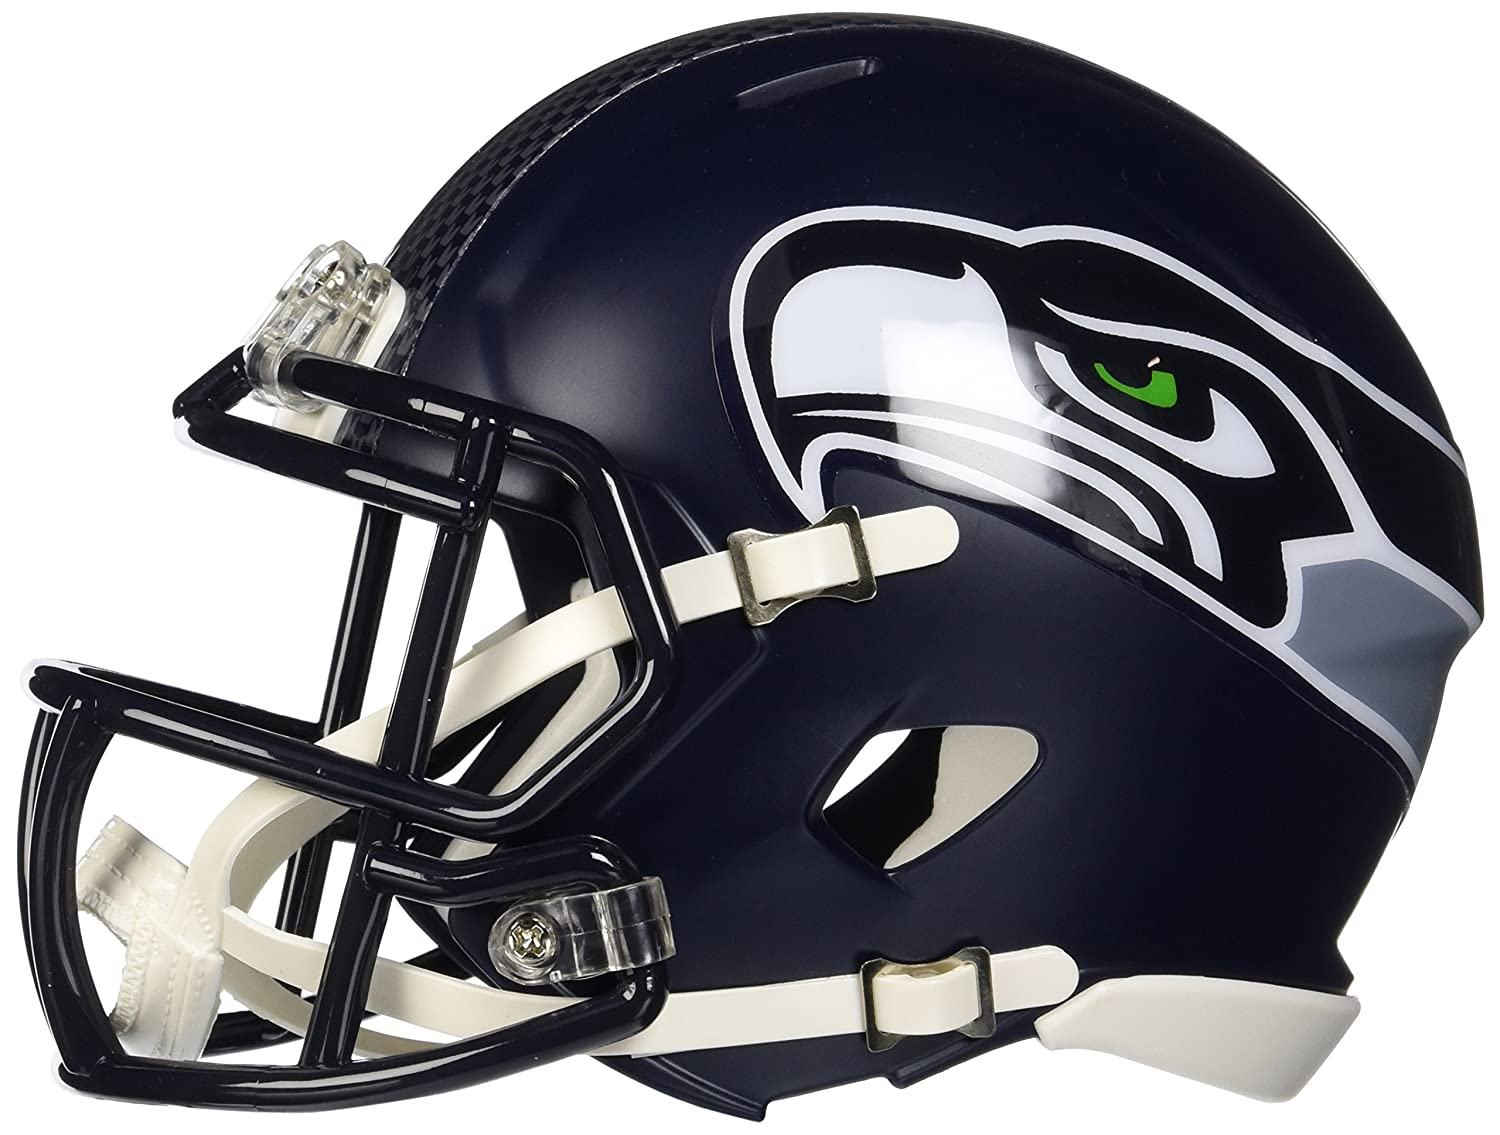 Mini Kühlschrank Nfl : Nfl riddell football speed mini helm seattle seahawks: amazon.de